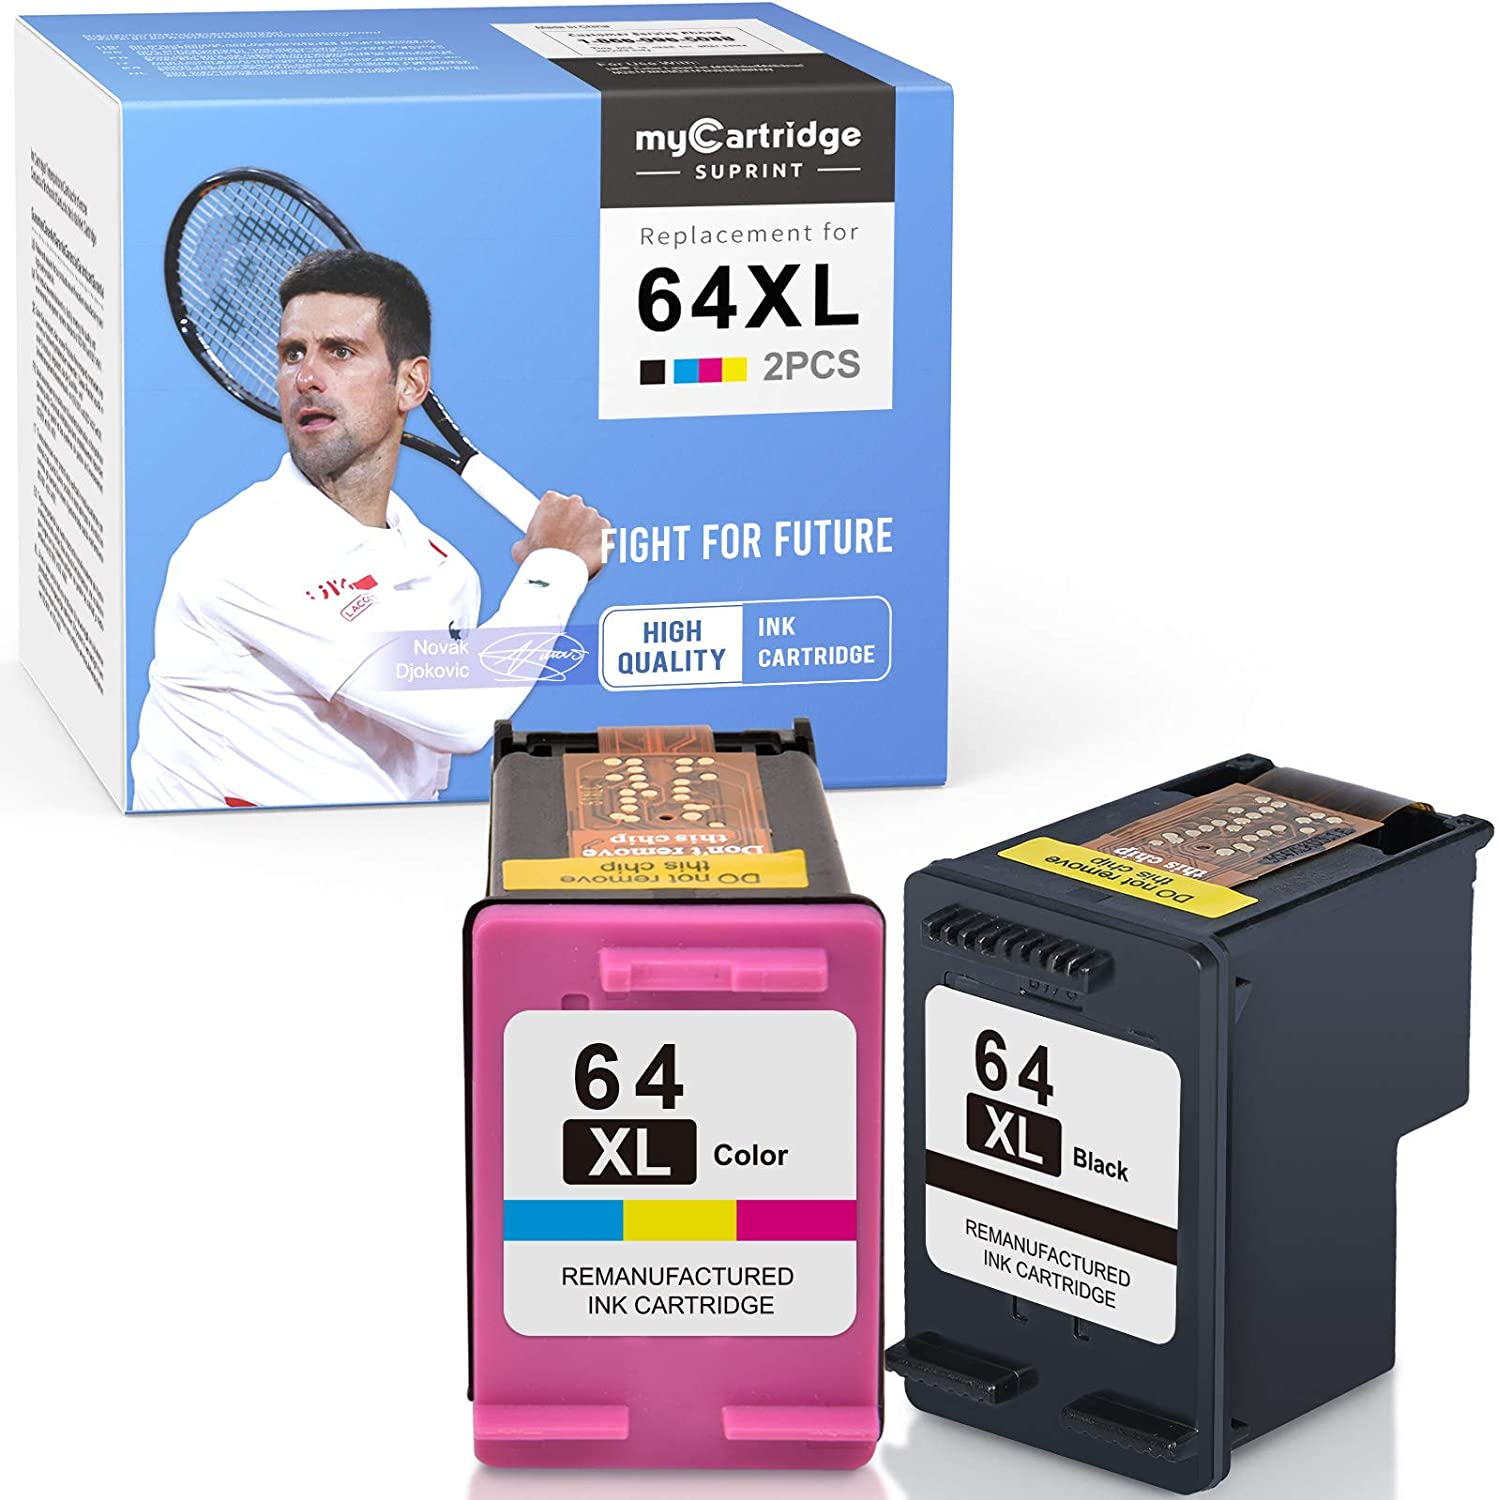 myCartridge SUPRINT Remanufactured Ink Cartridge Replacement for HP 64 XL 64XL use with Envy 7858 7855 7155 6255 7800 Tango X 6252 5542 7164 Black Tri-Color (2 Pack)